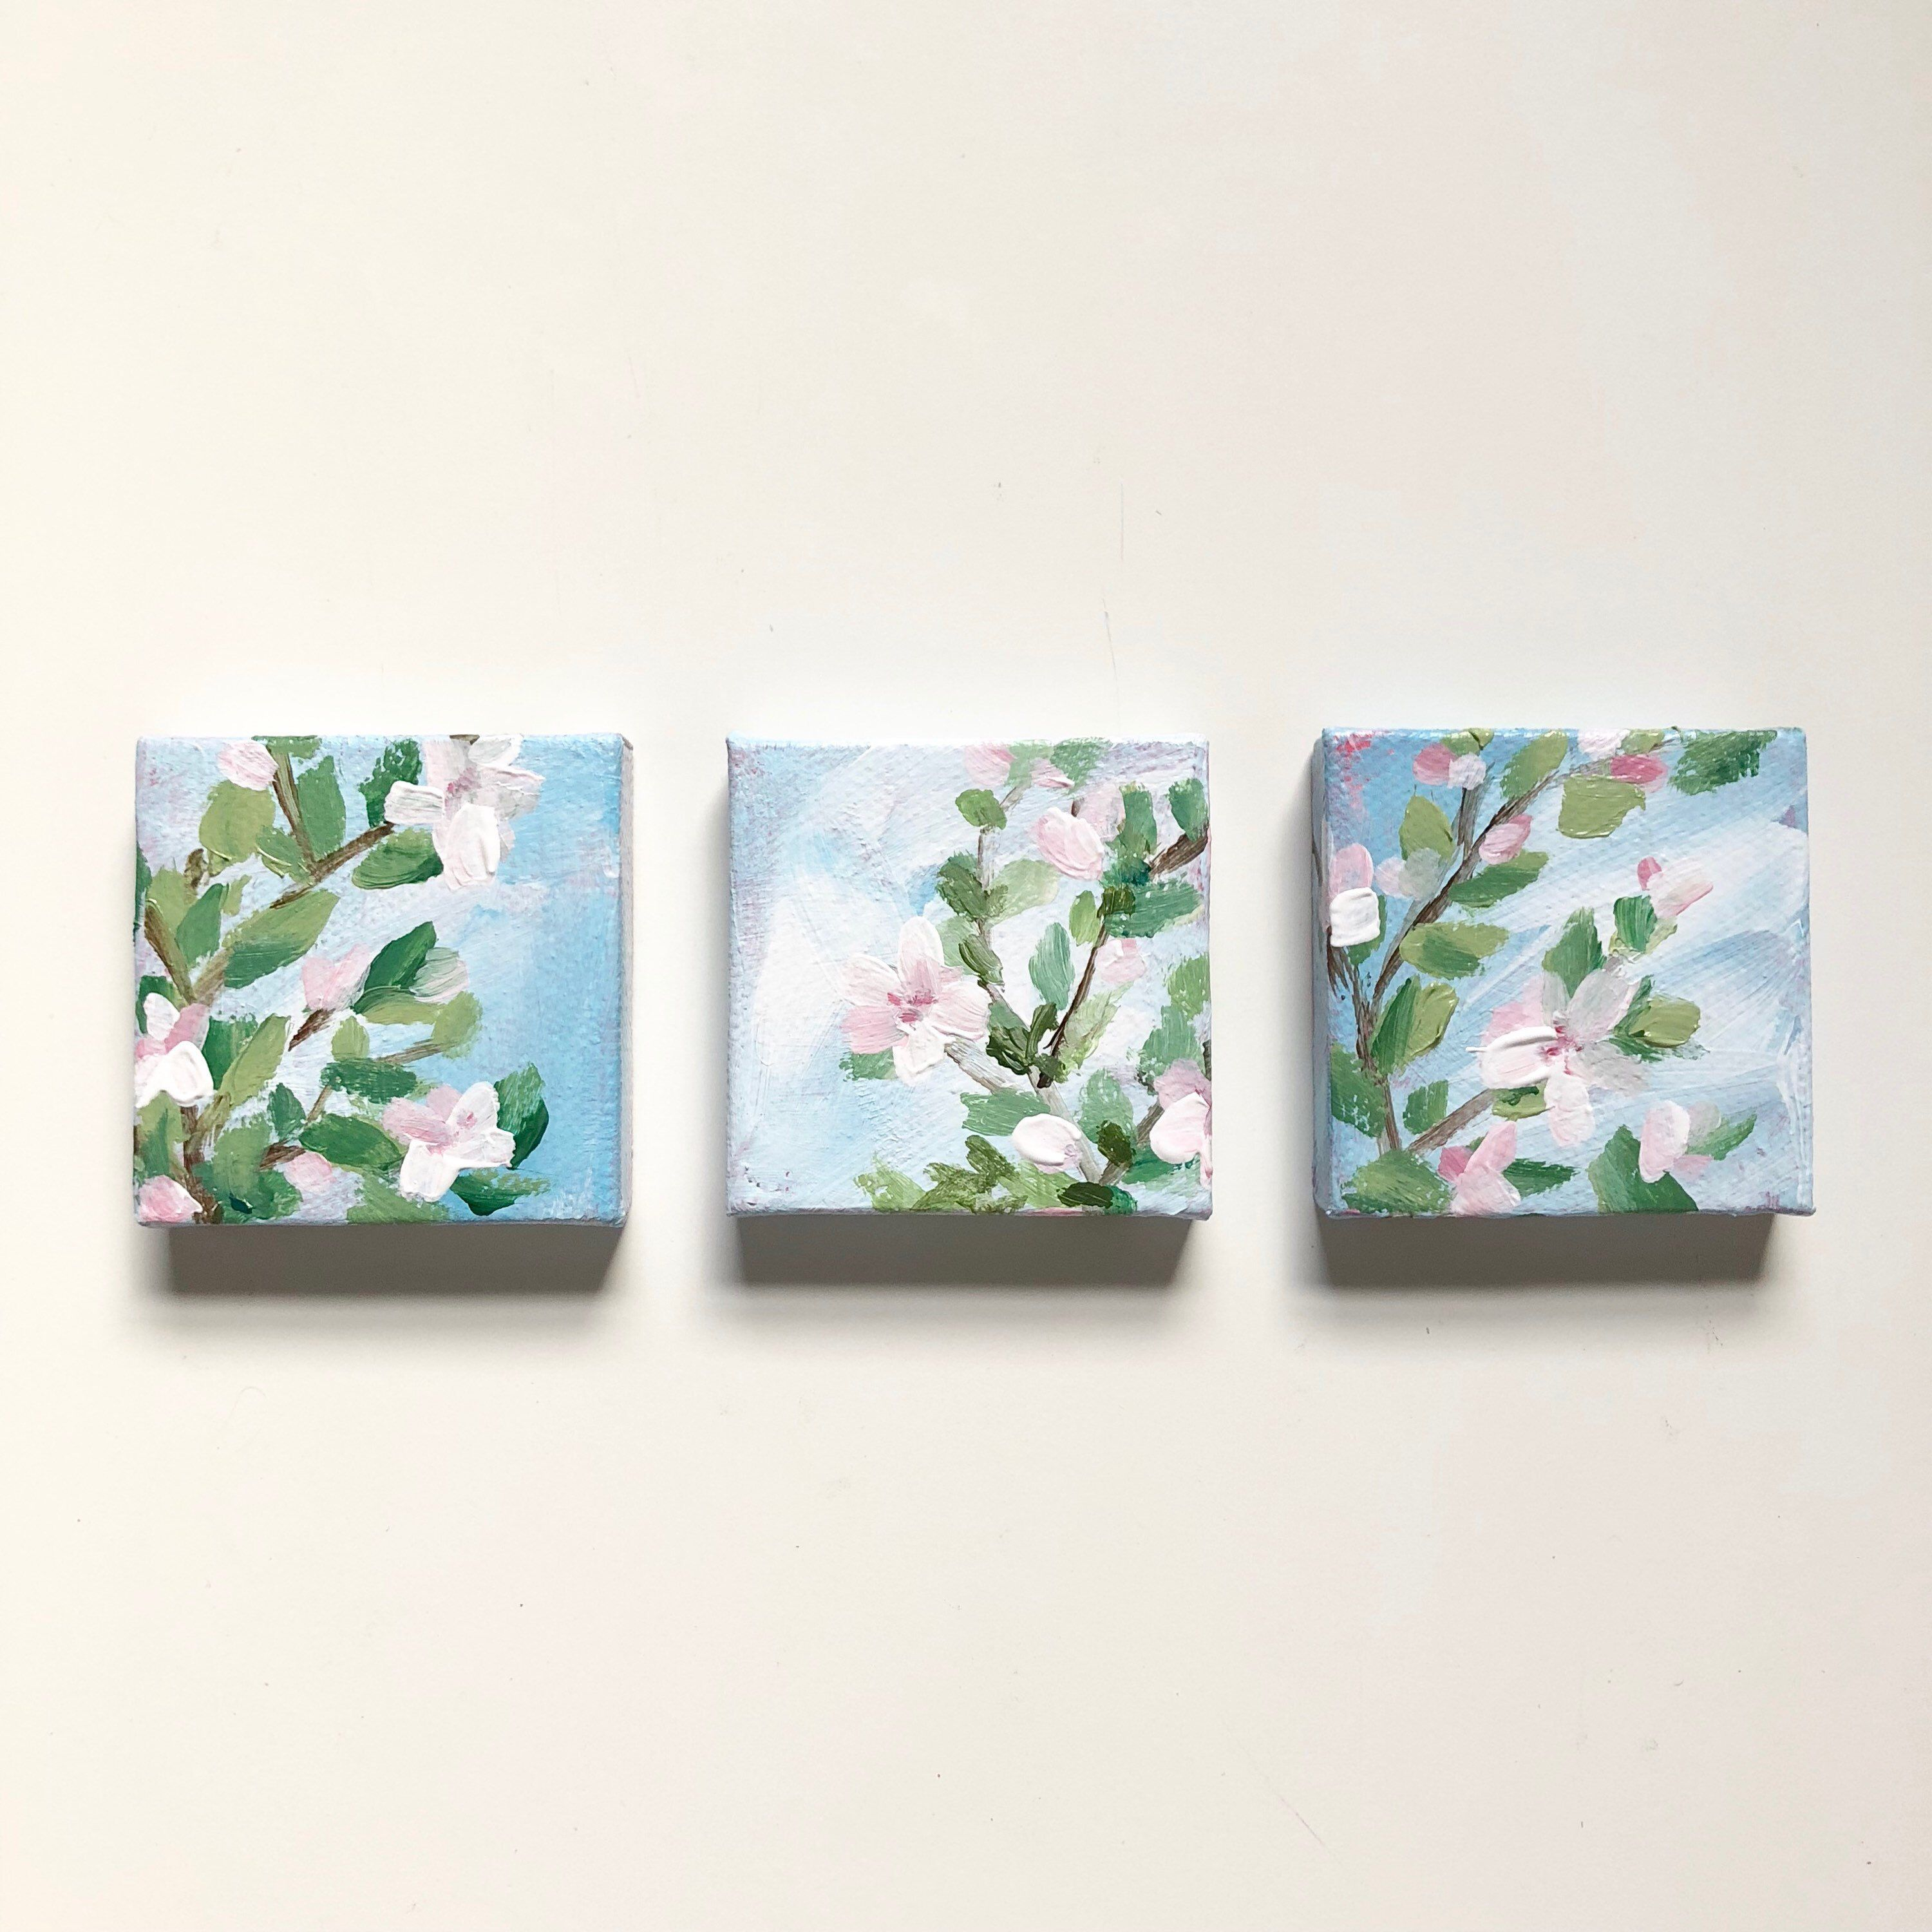 Tee Tiny Pink Spring Blossoms Acrylic Paintings Set Of 3 Etsy Small Canvas Paintings Mini Canvas Art Watercolor Paint Set